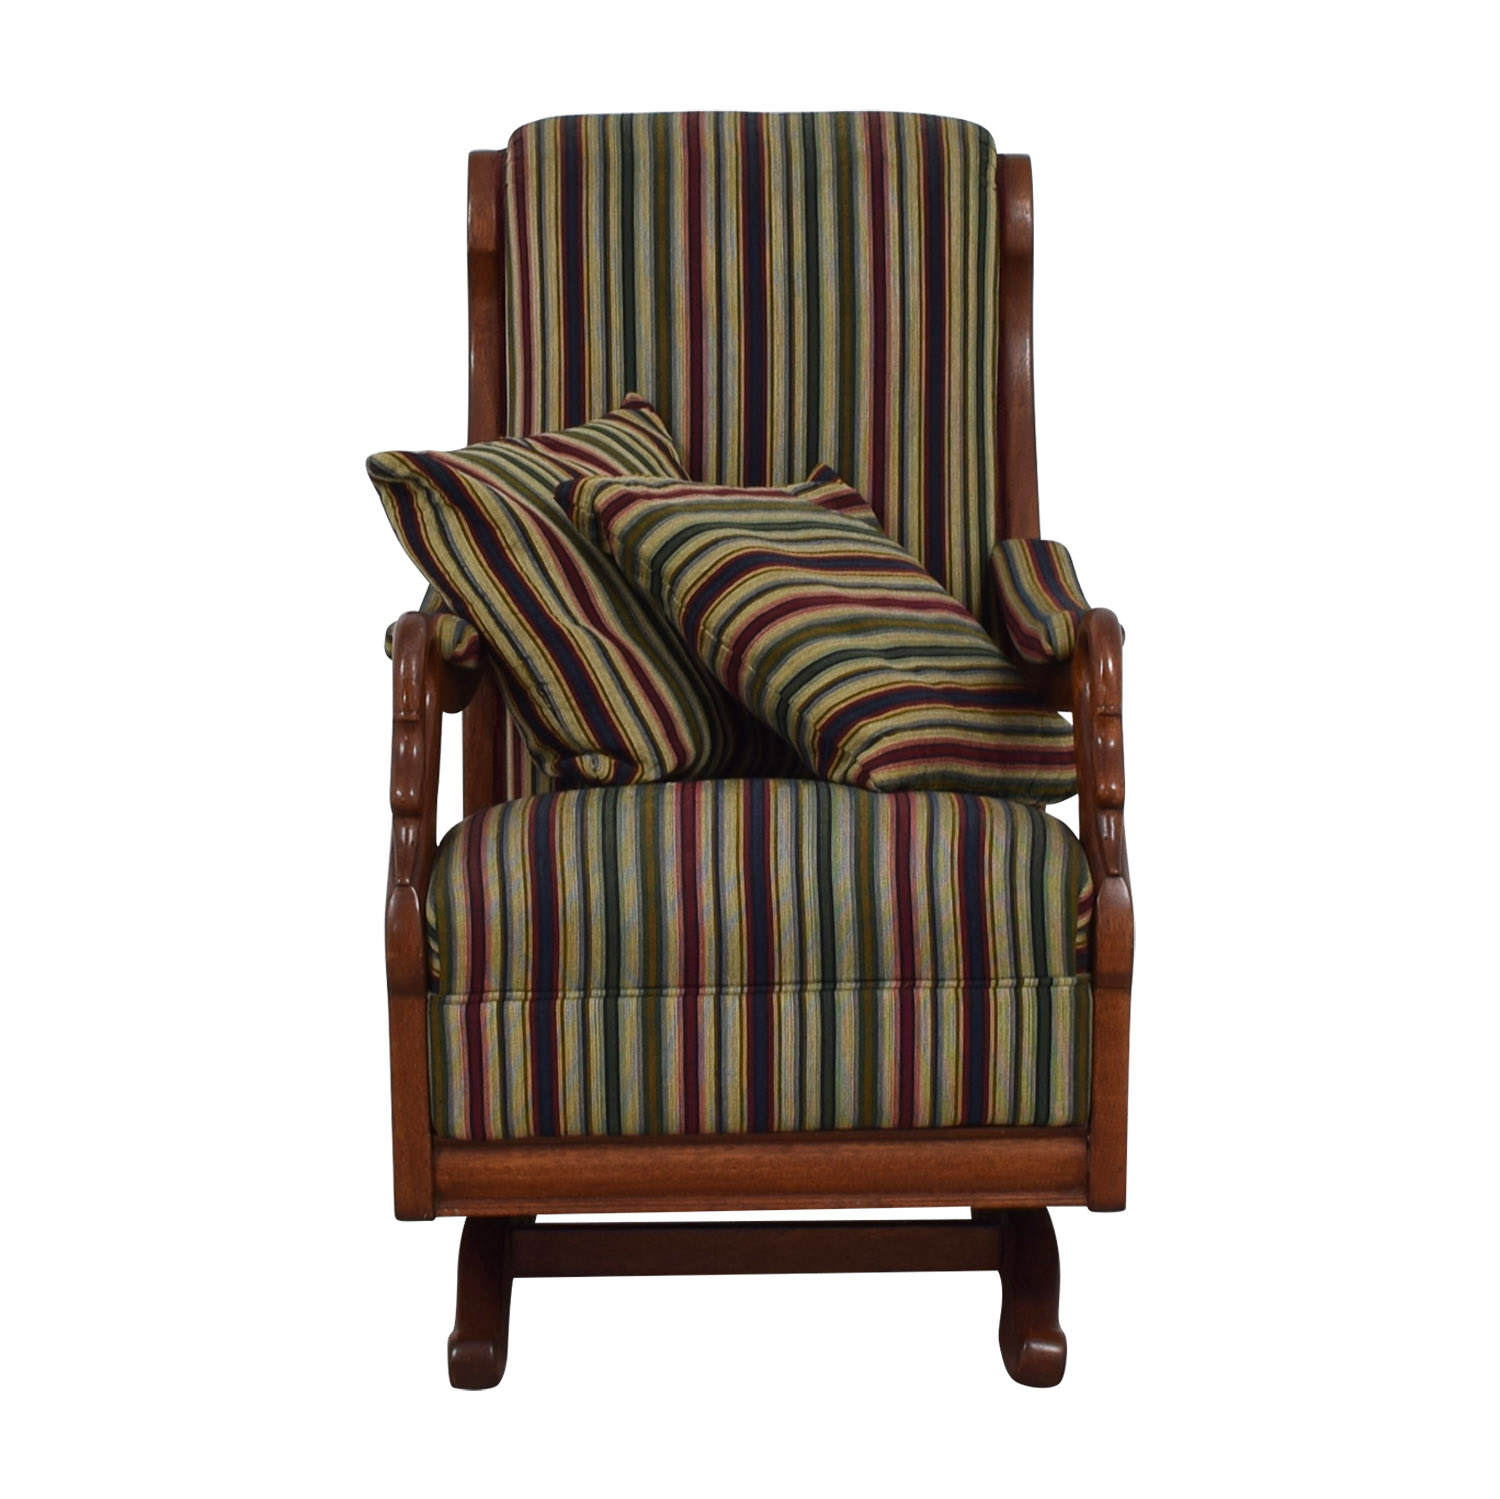 Cherry Gooseneck Striped Platform Rocker price